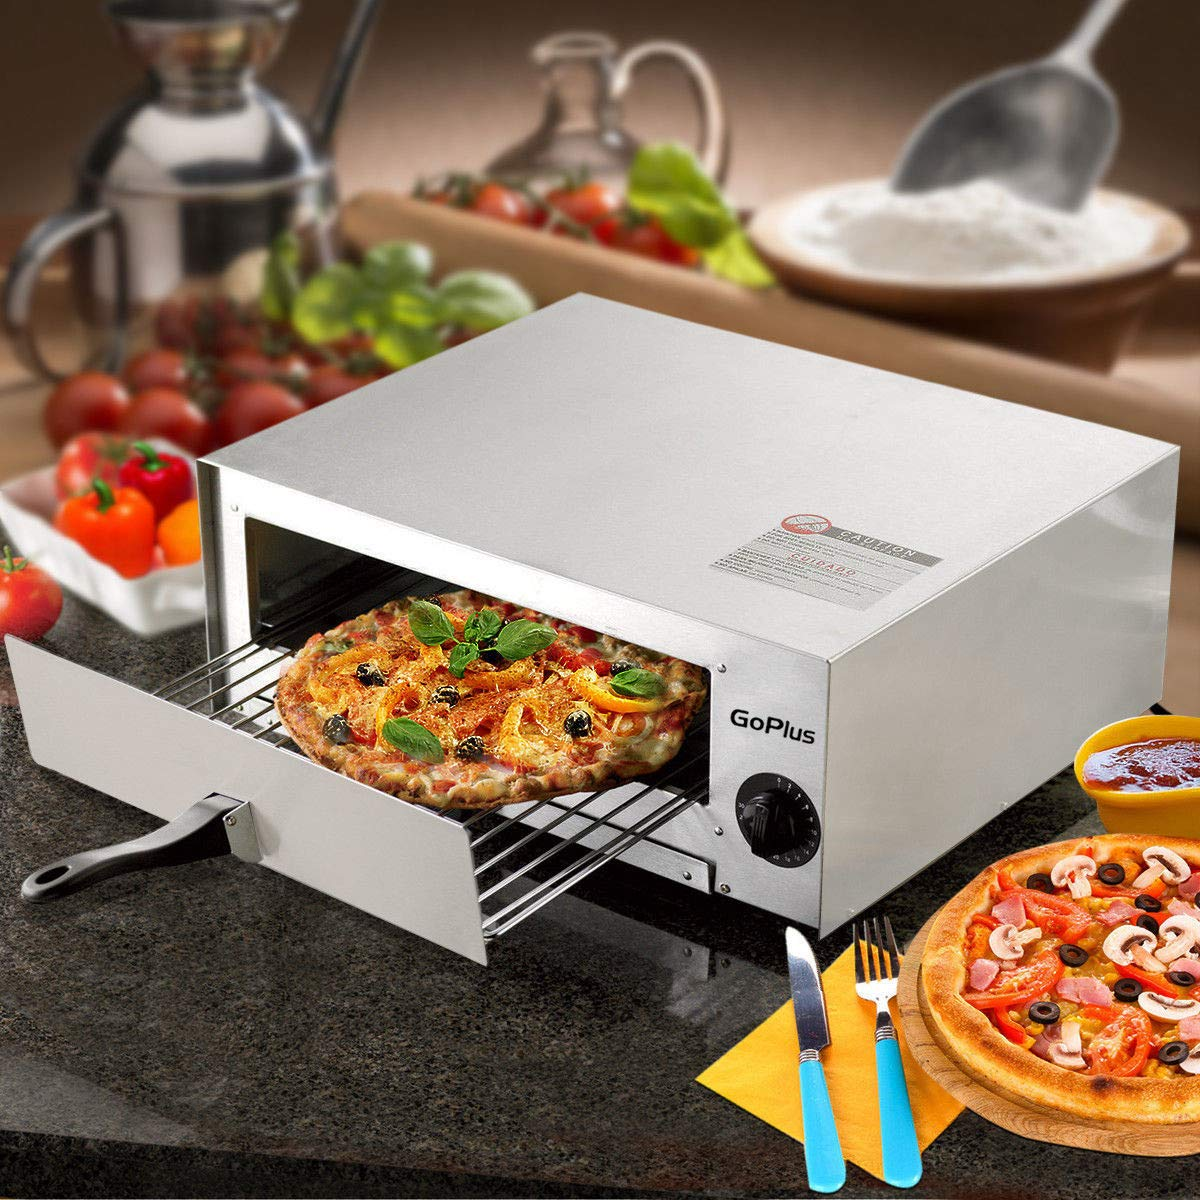 Family Kitchen Stainless-Steel Pis Roaster Built-in Temperature Control